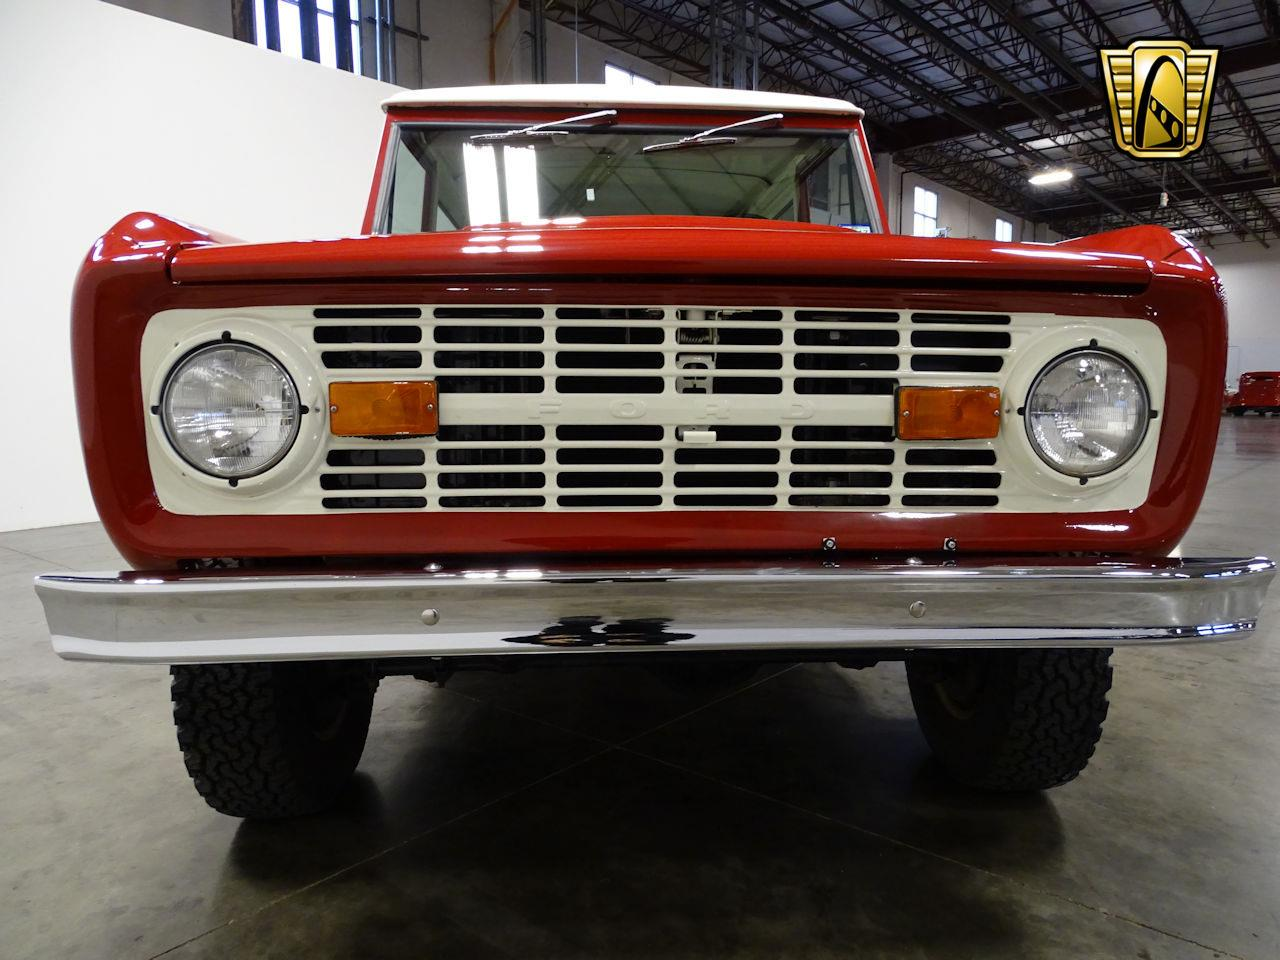 Large Picture of Classic '73 Ford Bronco - $37,995.00 Offered by Gateway Classic Cars - Nashville - MN68